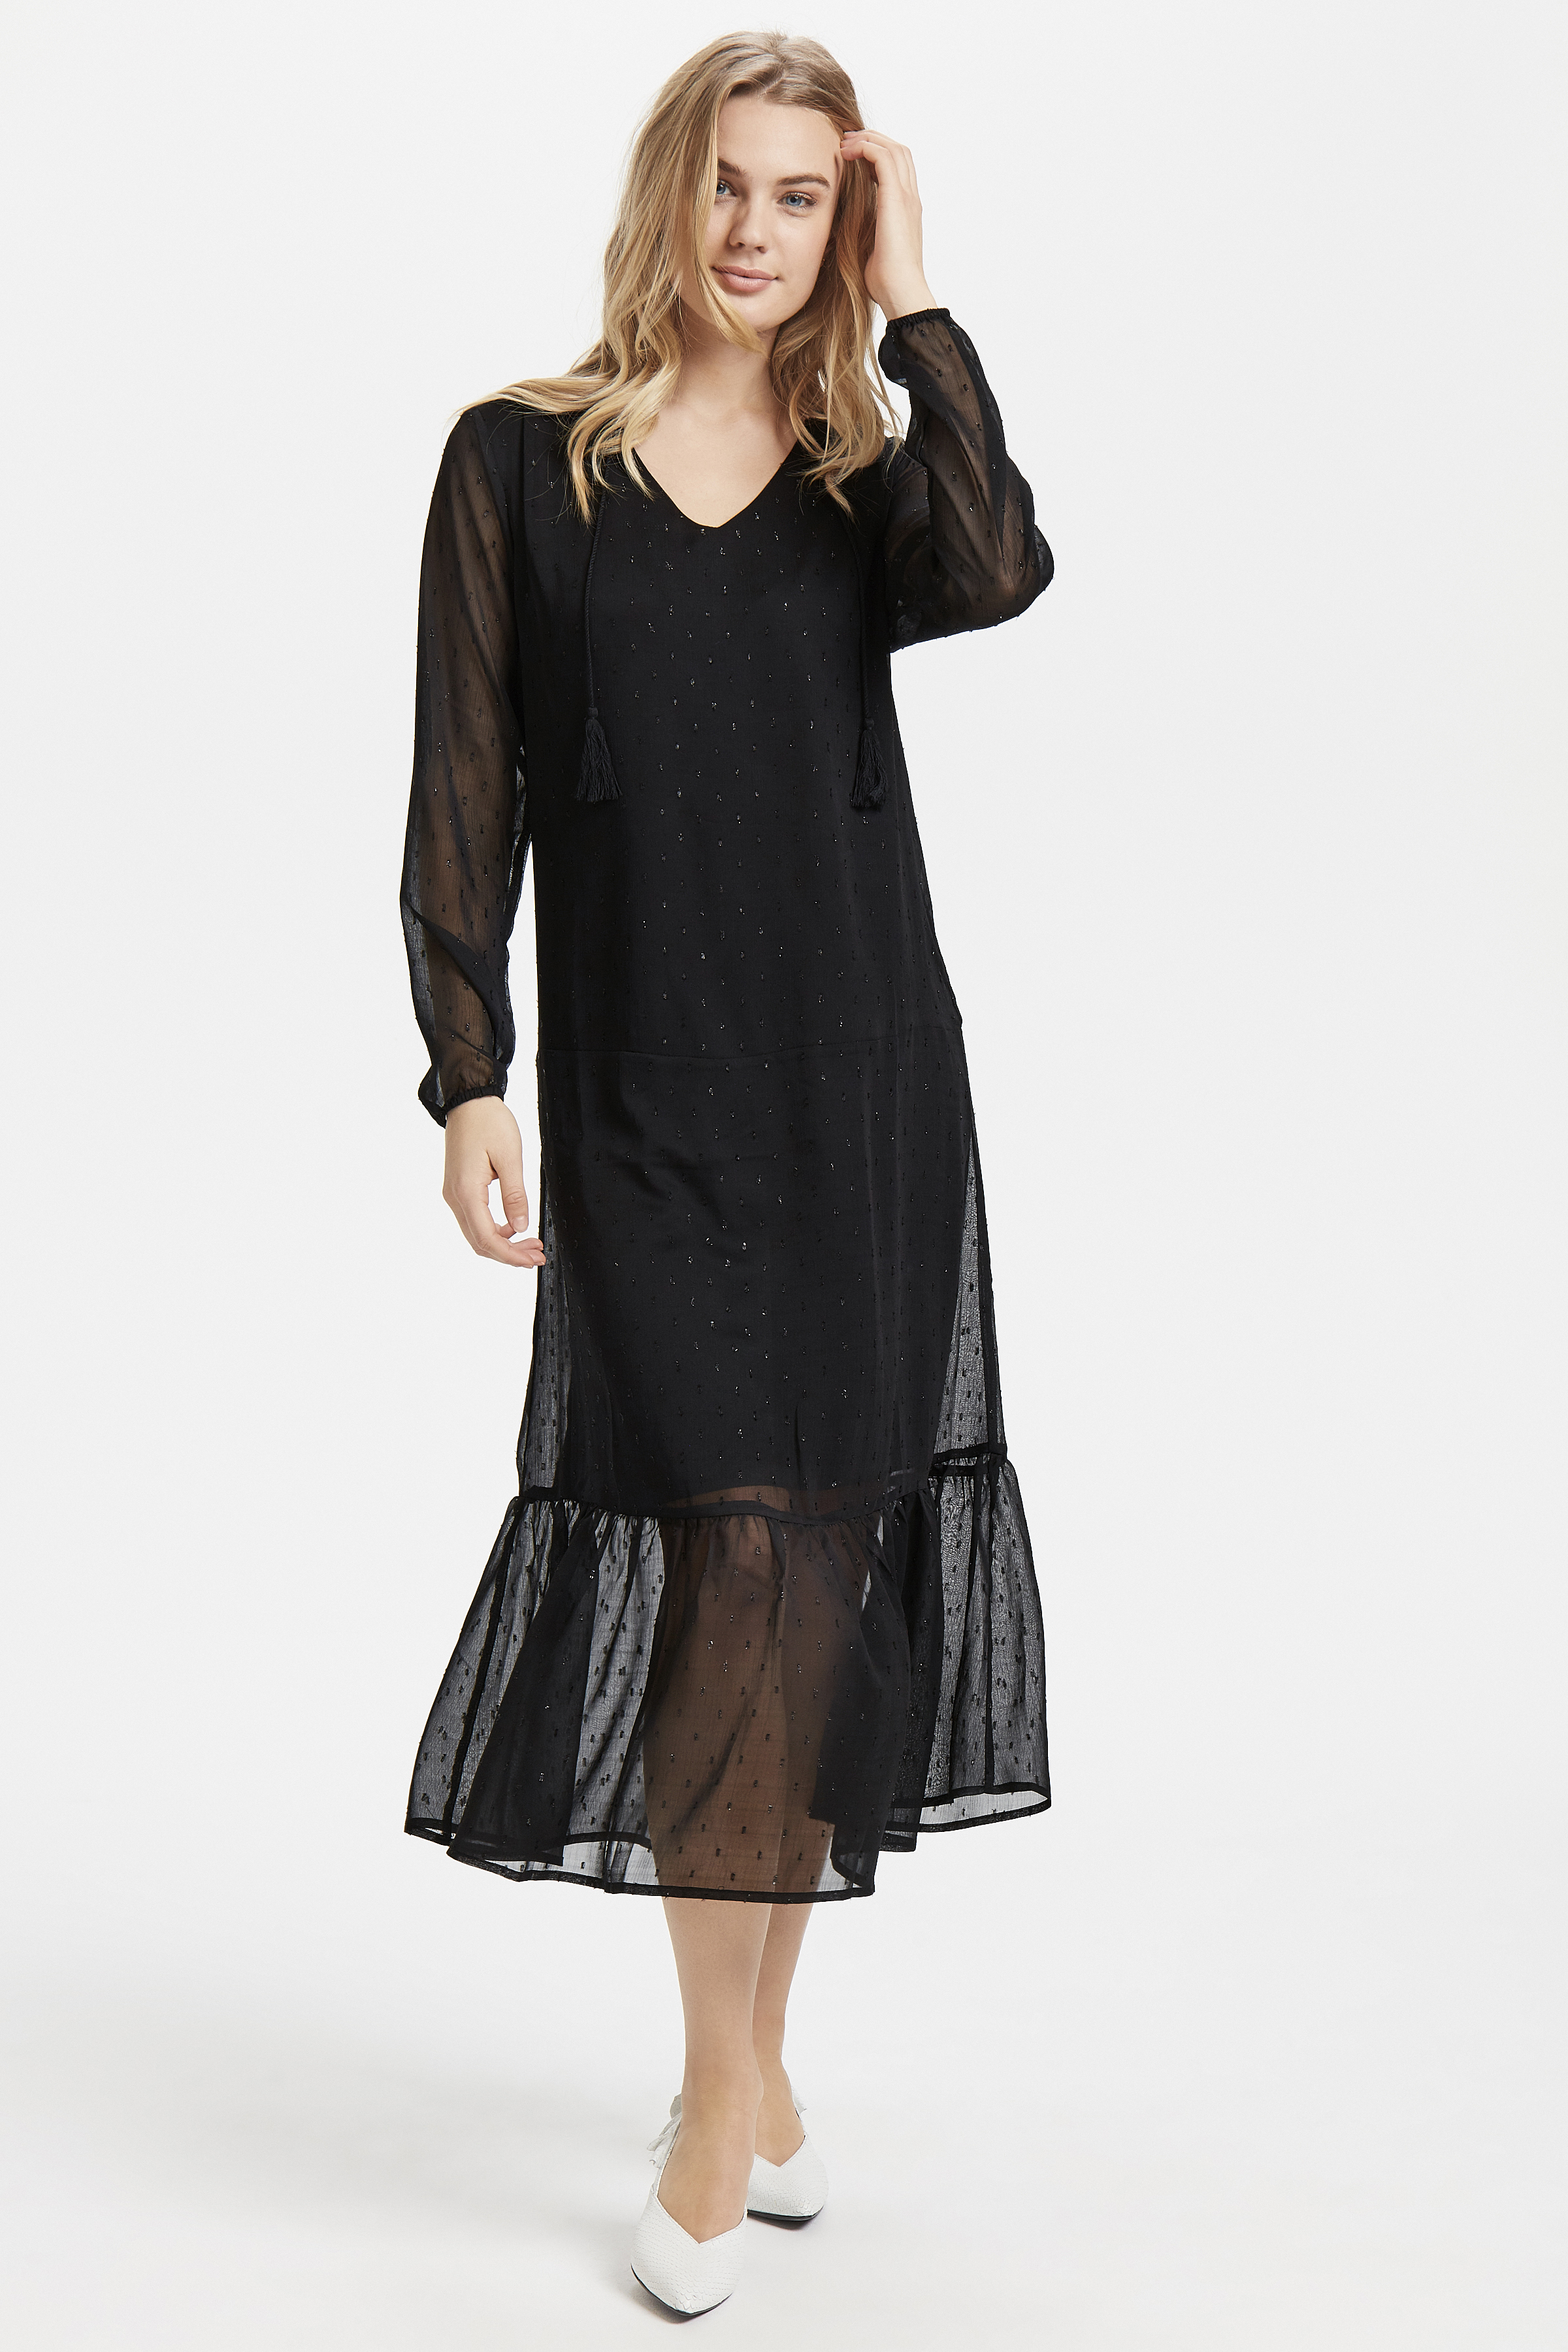 Black Dress from b.young – Buy Black Dress from size 34-42 here